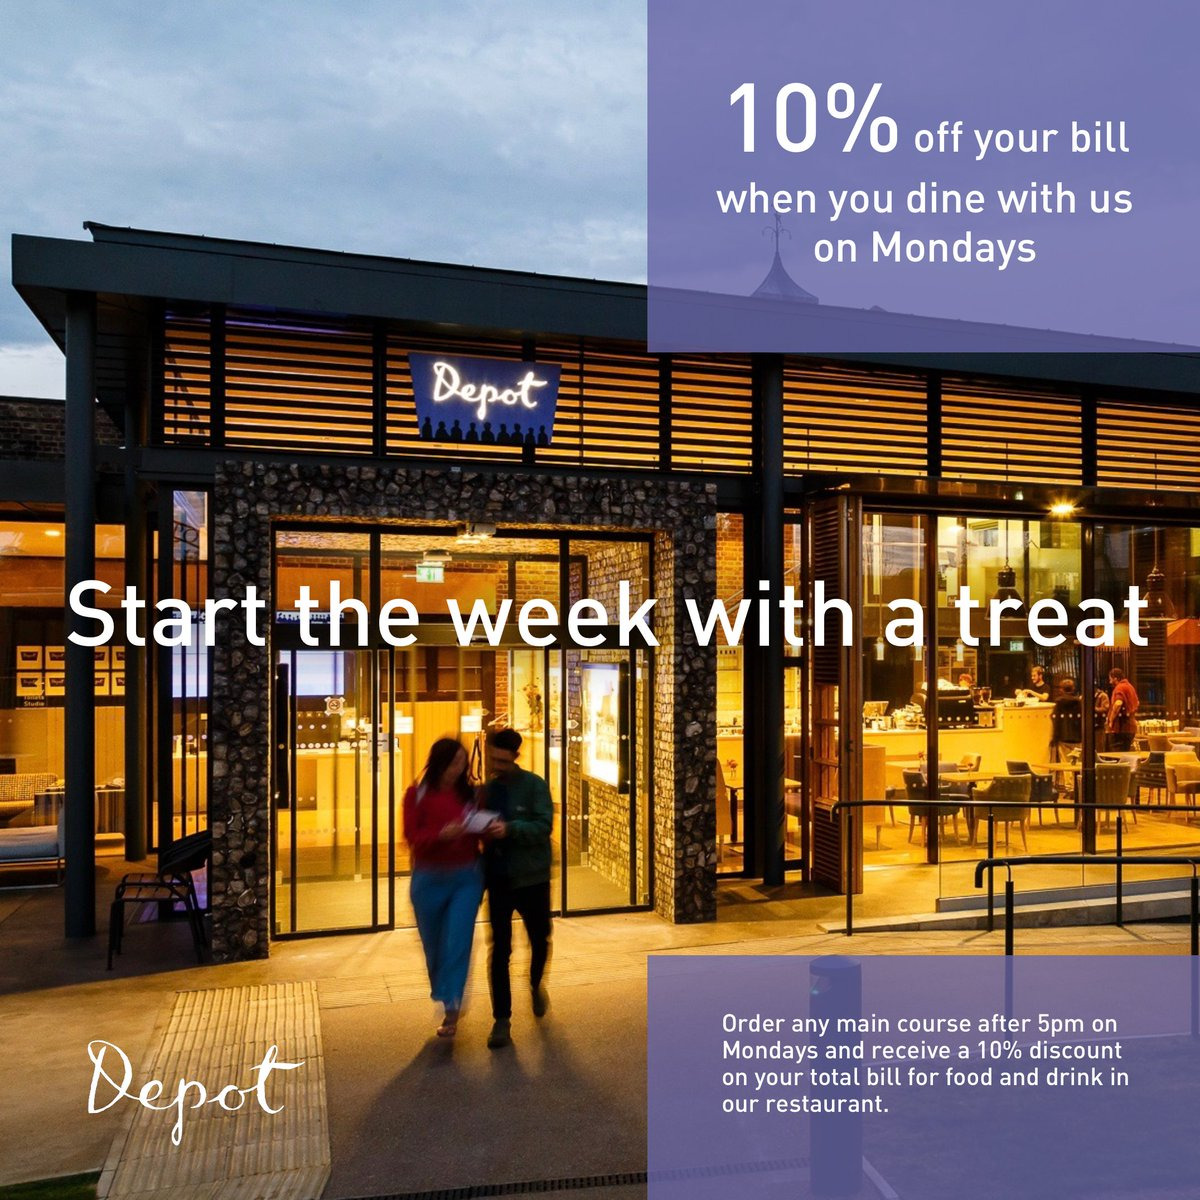 Start the week with a treat at Depot. There's 10% off your bill tonight, when you order any main course in our restaurant. #MondayMotivation #lewes #dinner #offer